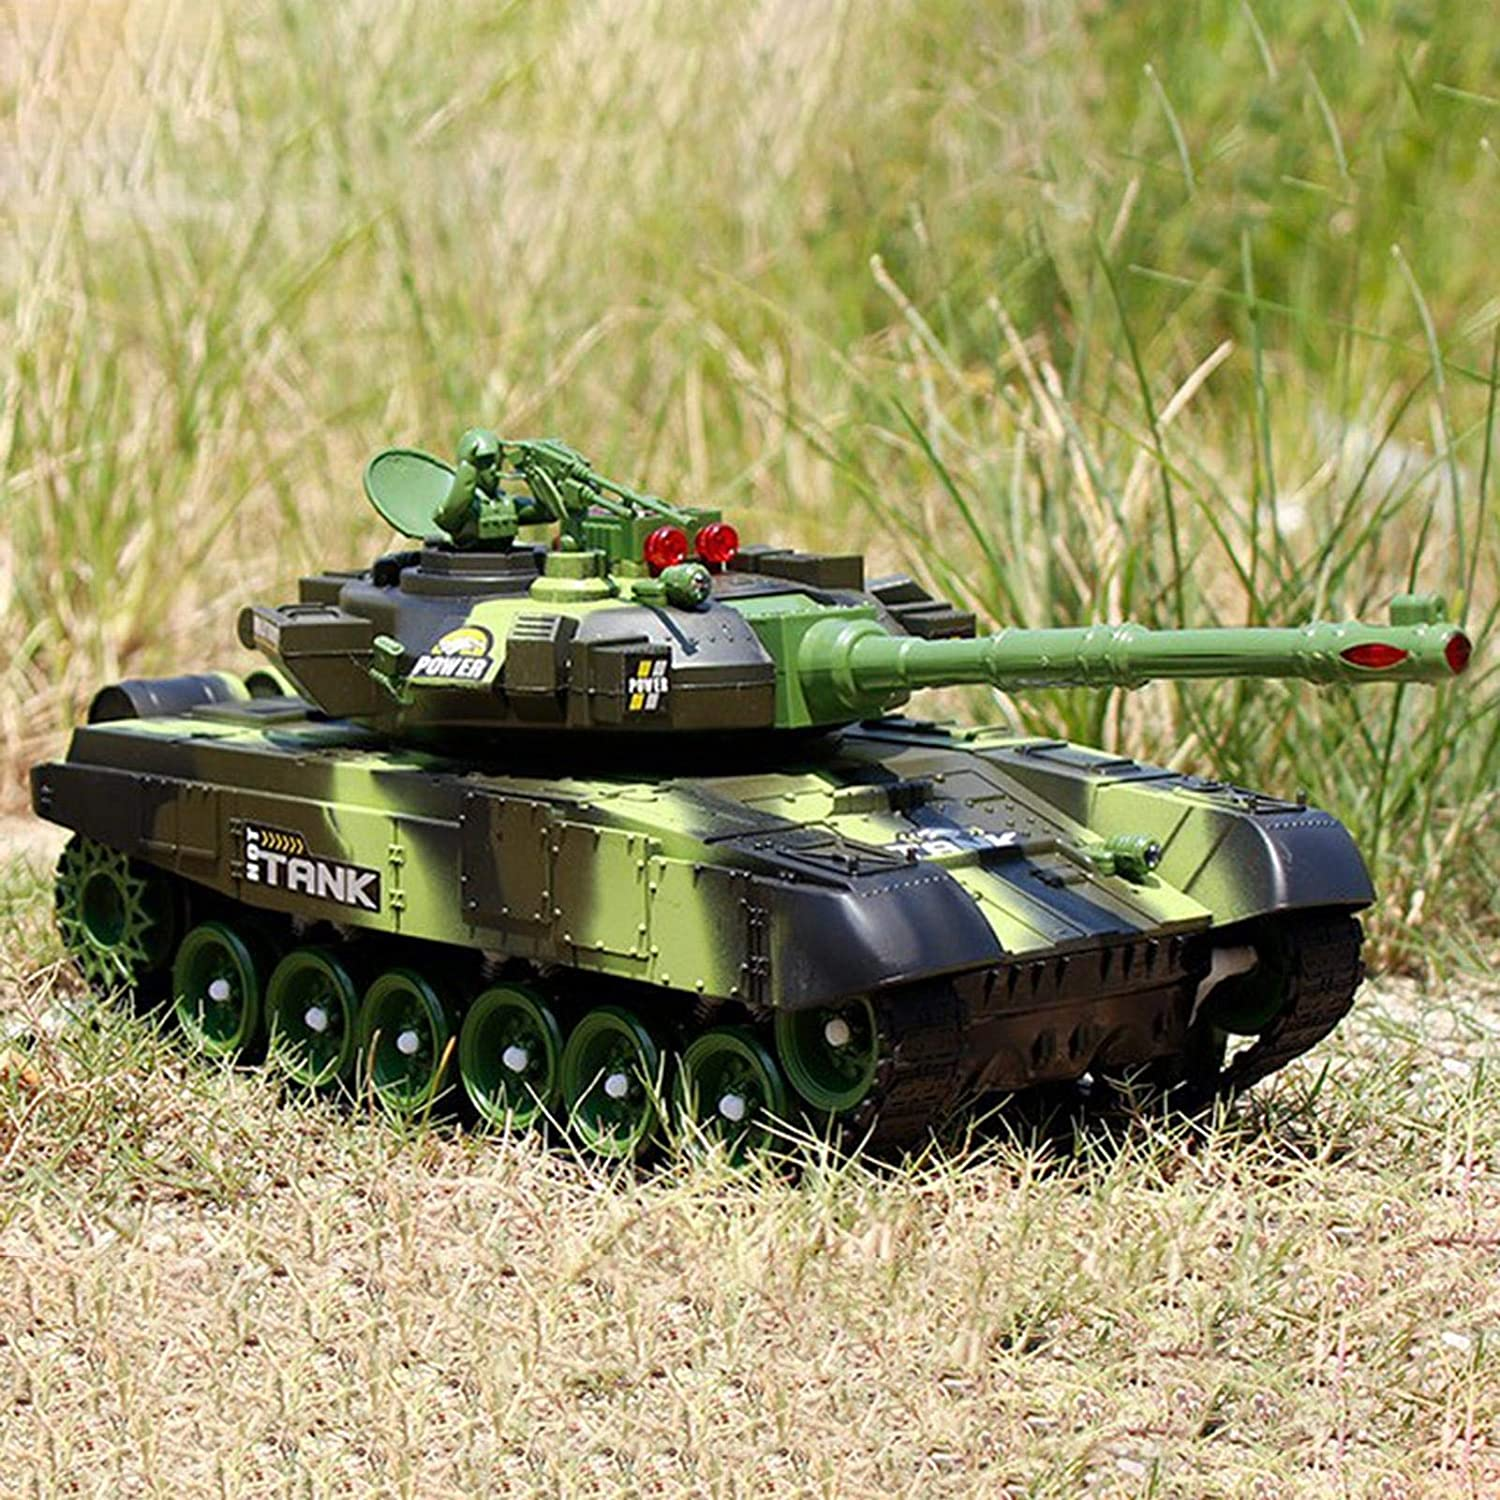 For Kids /& Adults Remote Control Toys 12 Inch Remote Control Military Vehicle Combat Fight With Sound Rotating Turret And Recoil Action When Cannon Artillery Shoots iFlymisi RC Tank